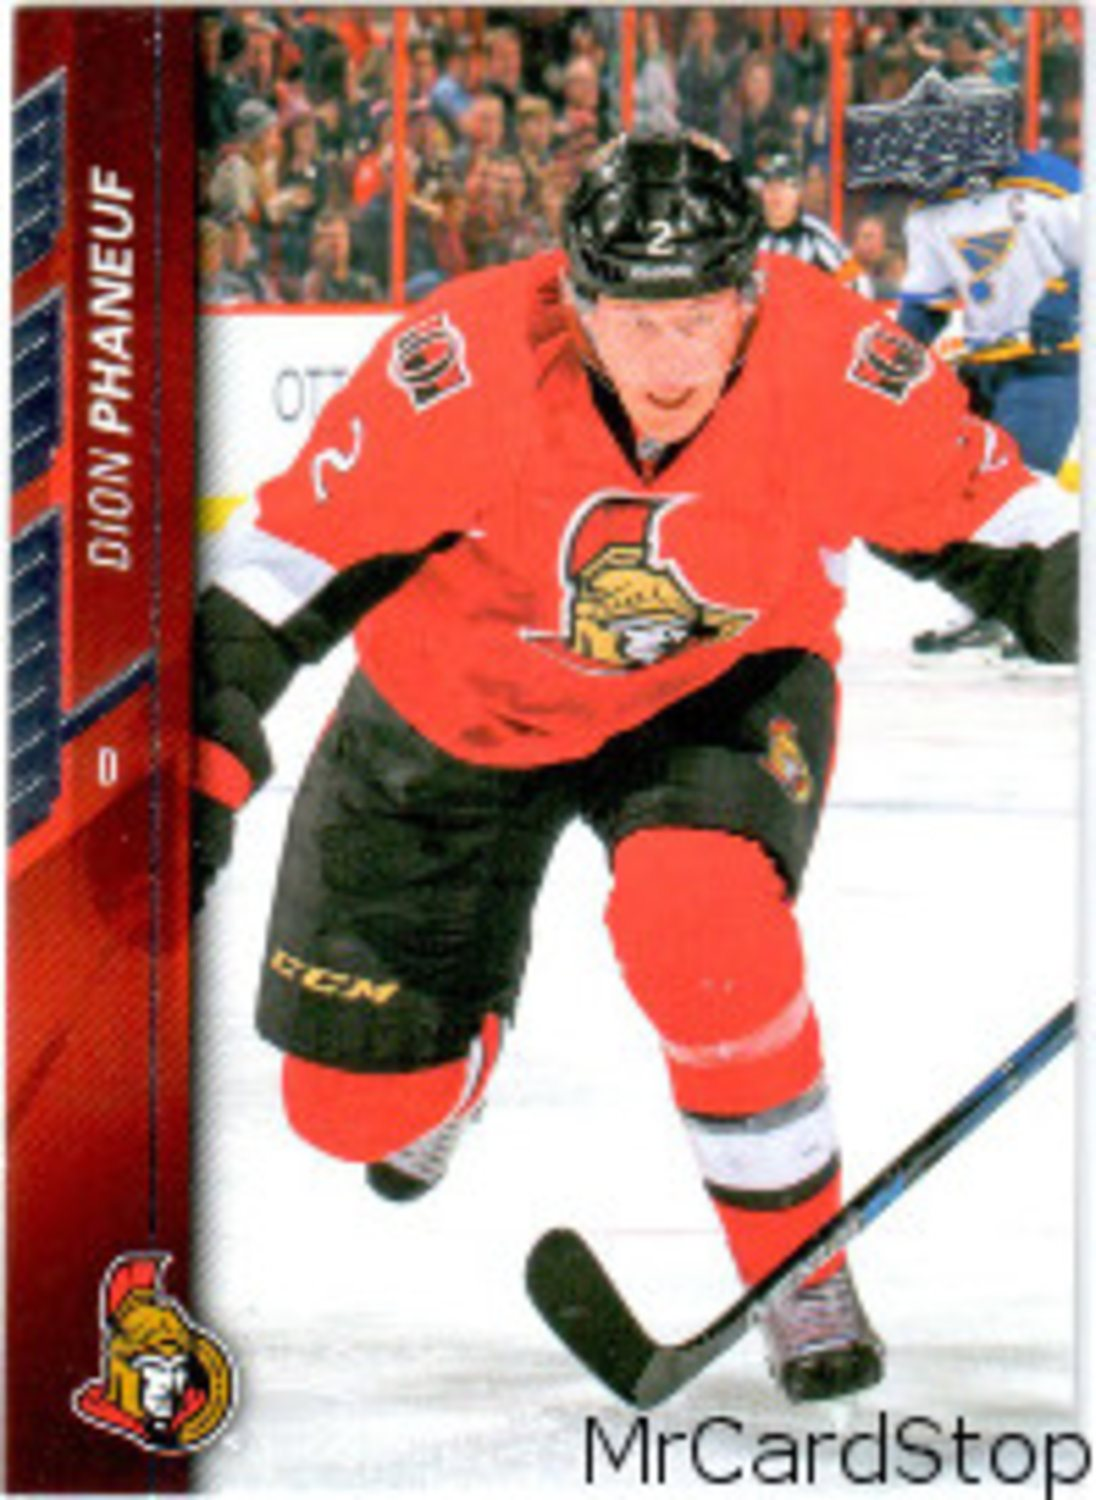 2015-16 Upper Deck 517 Dion Phaneuf Ottawa Senators